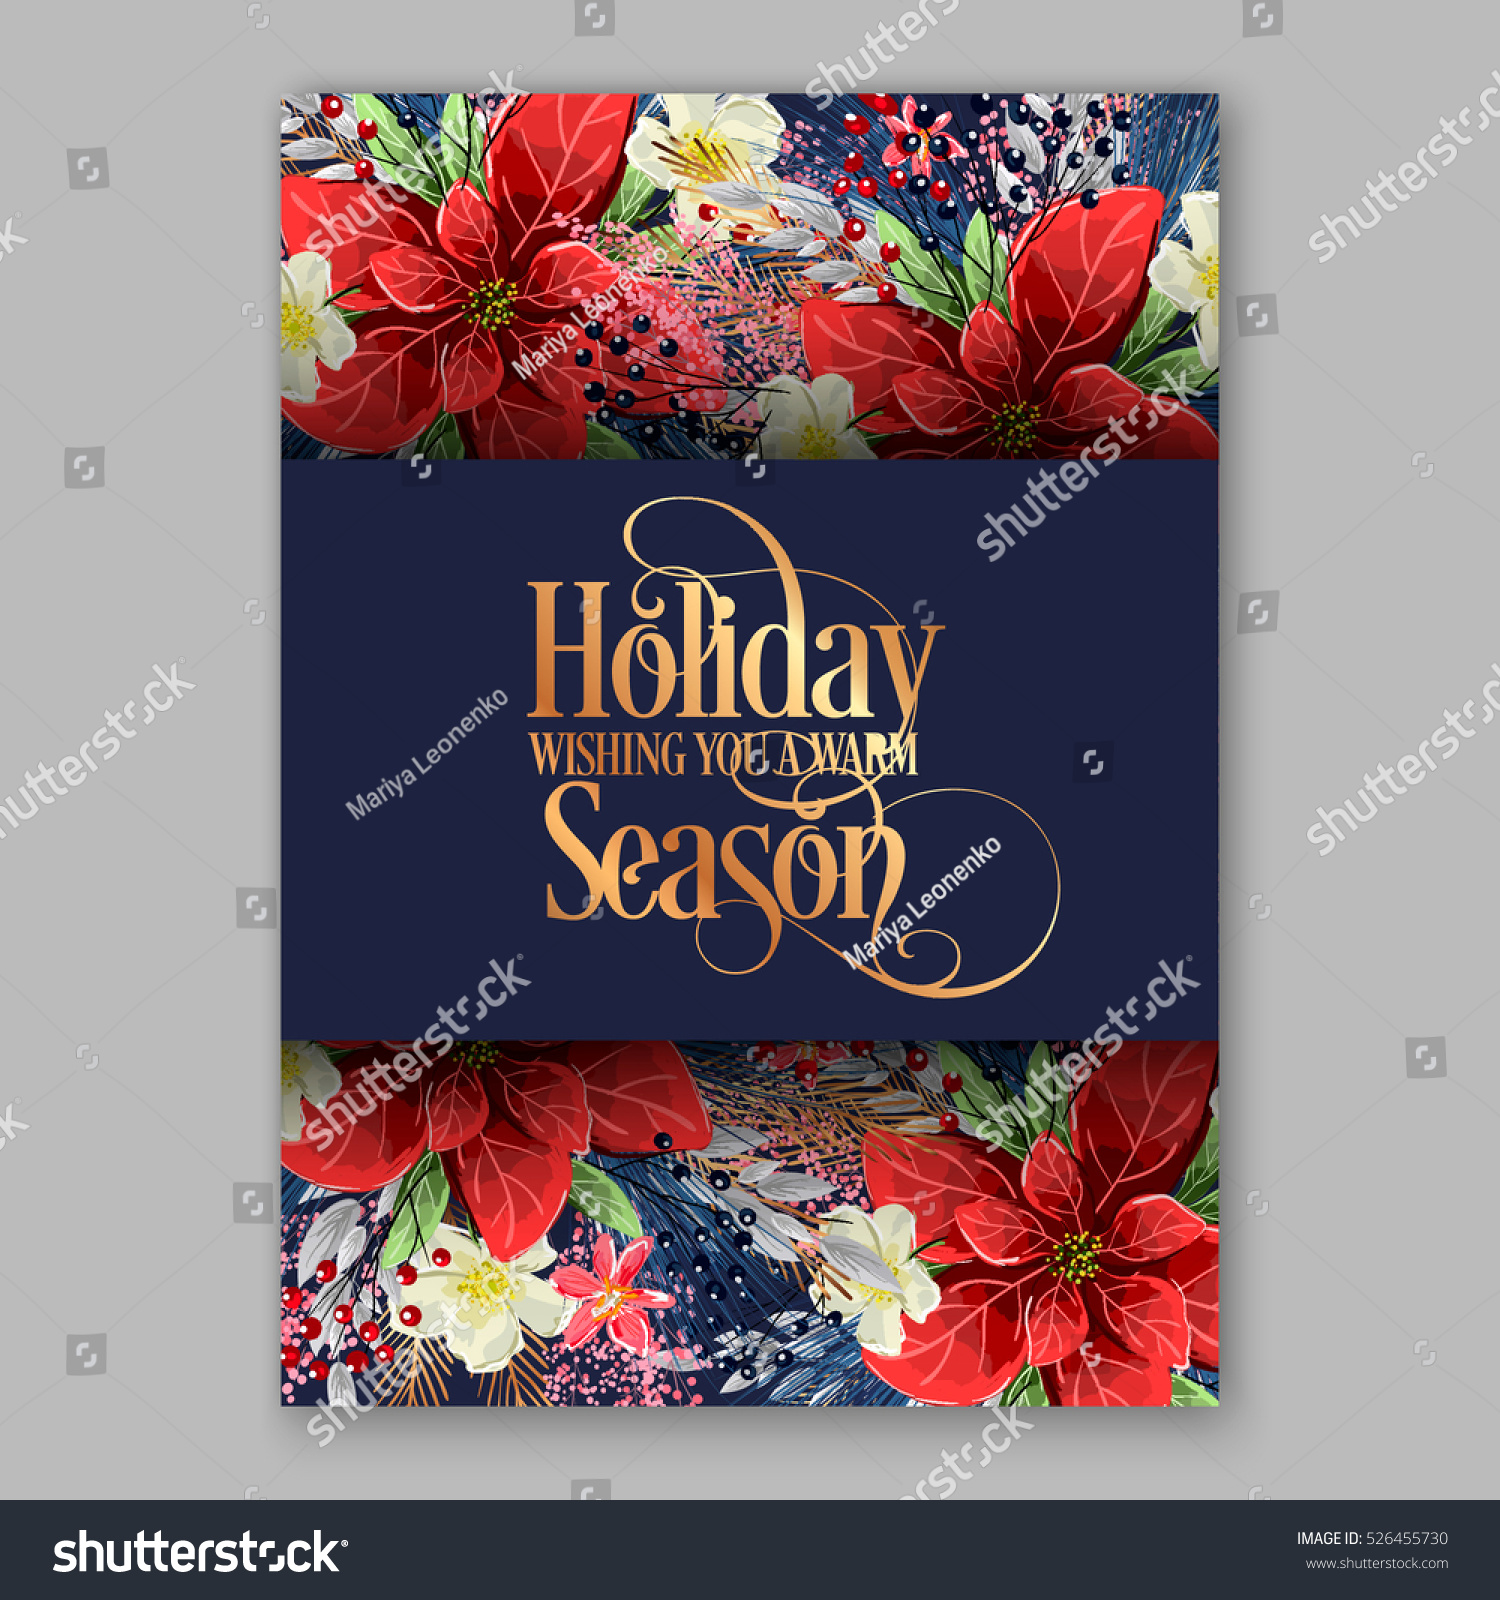 Poinsettia Christmas Party Invitation Sample Card Stock Vector ...